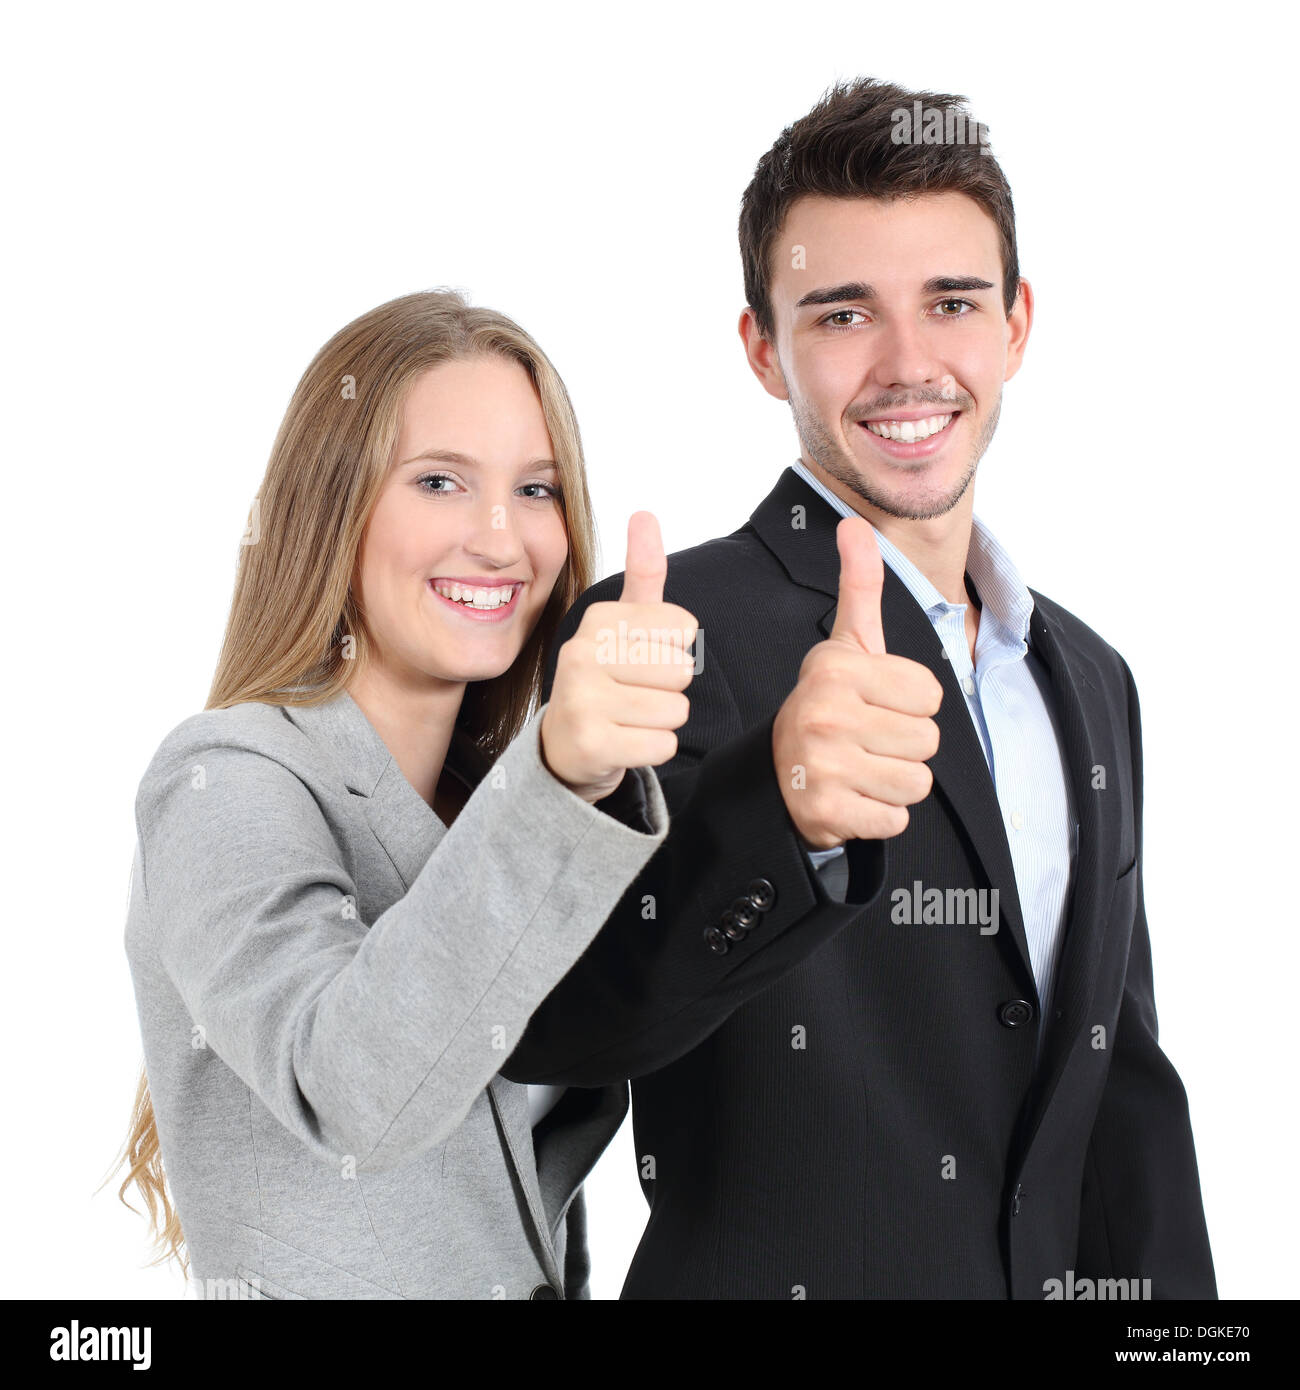 Two businesspeople agreement with thumb up isolated on a white background - Stock Image